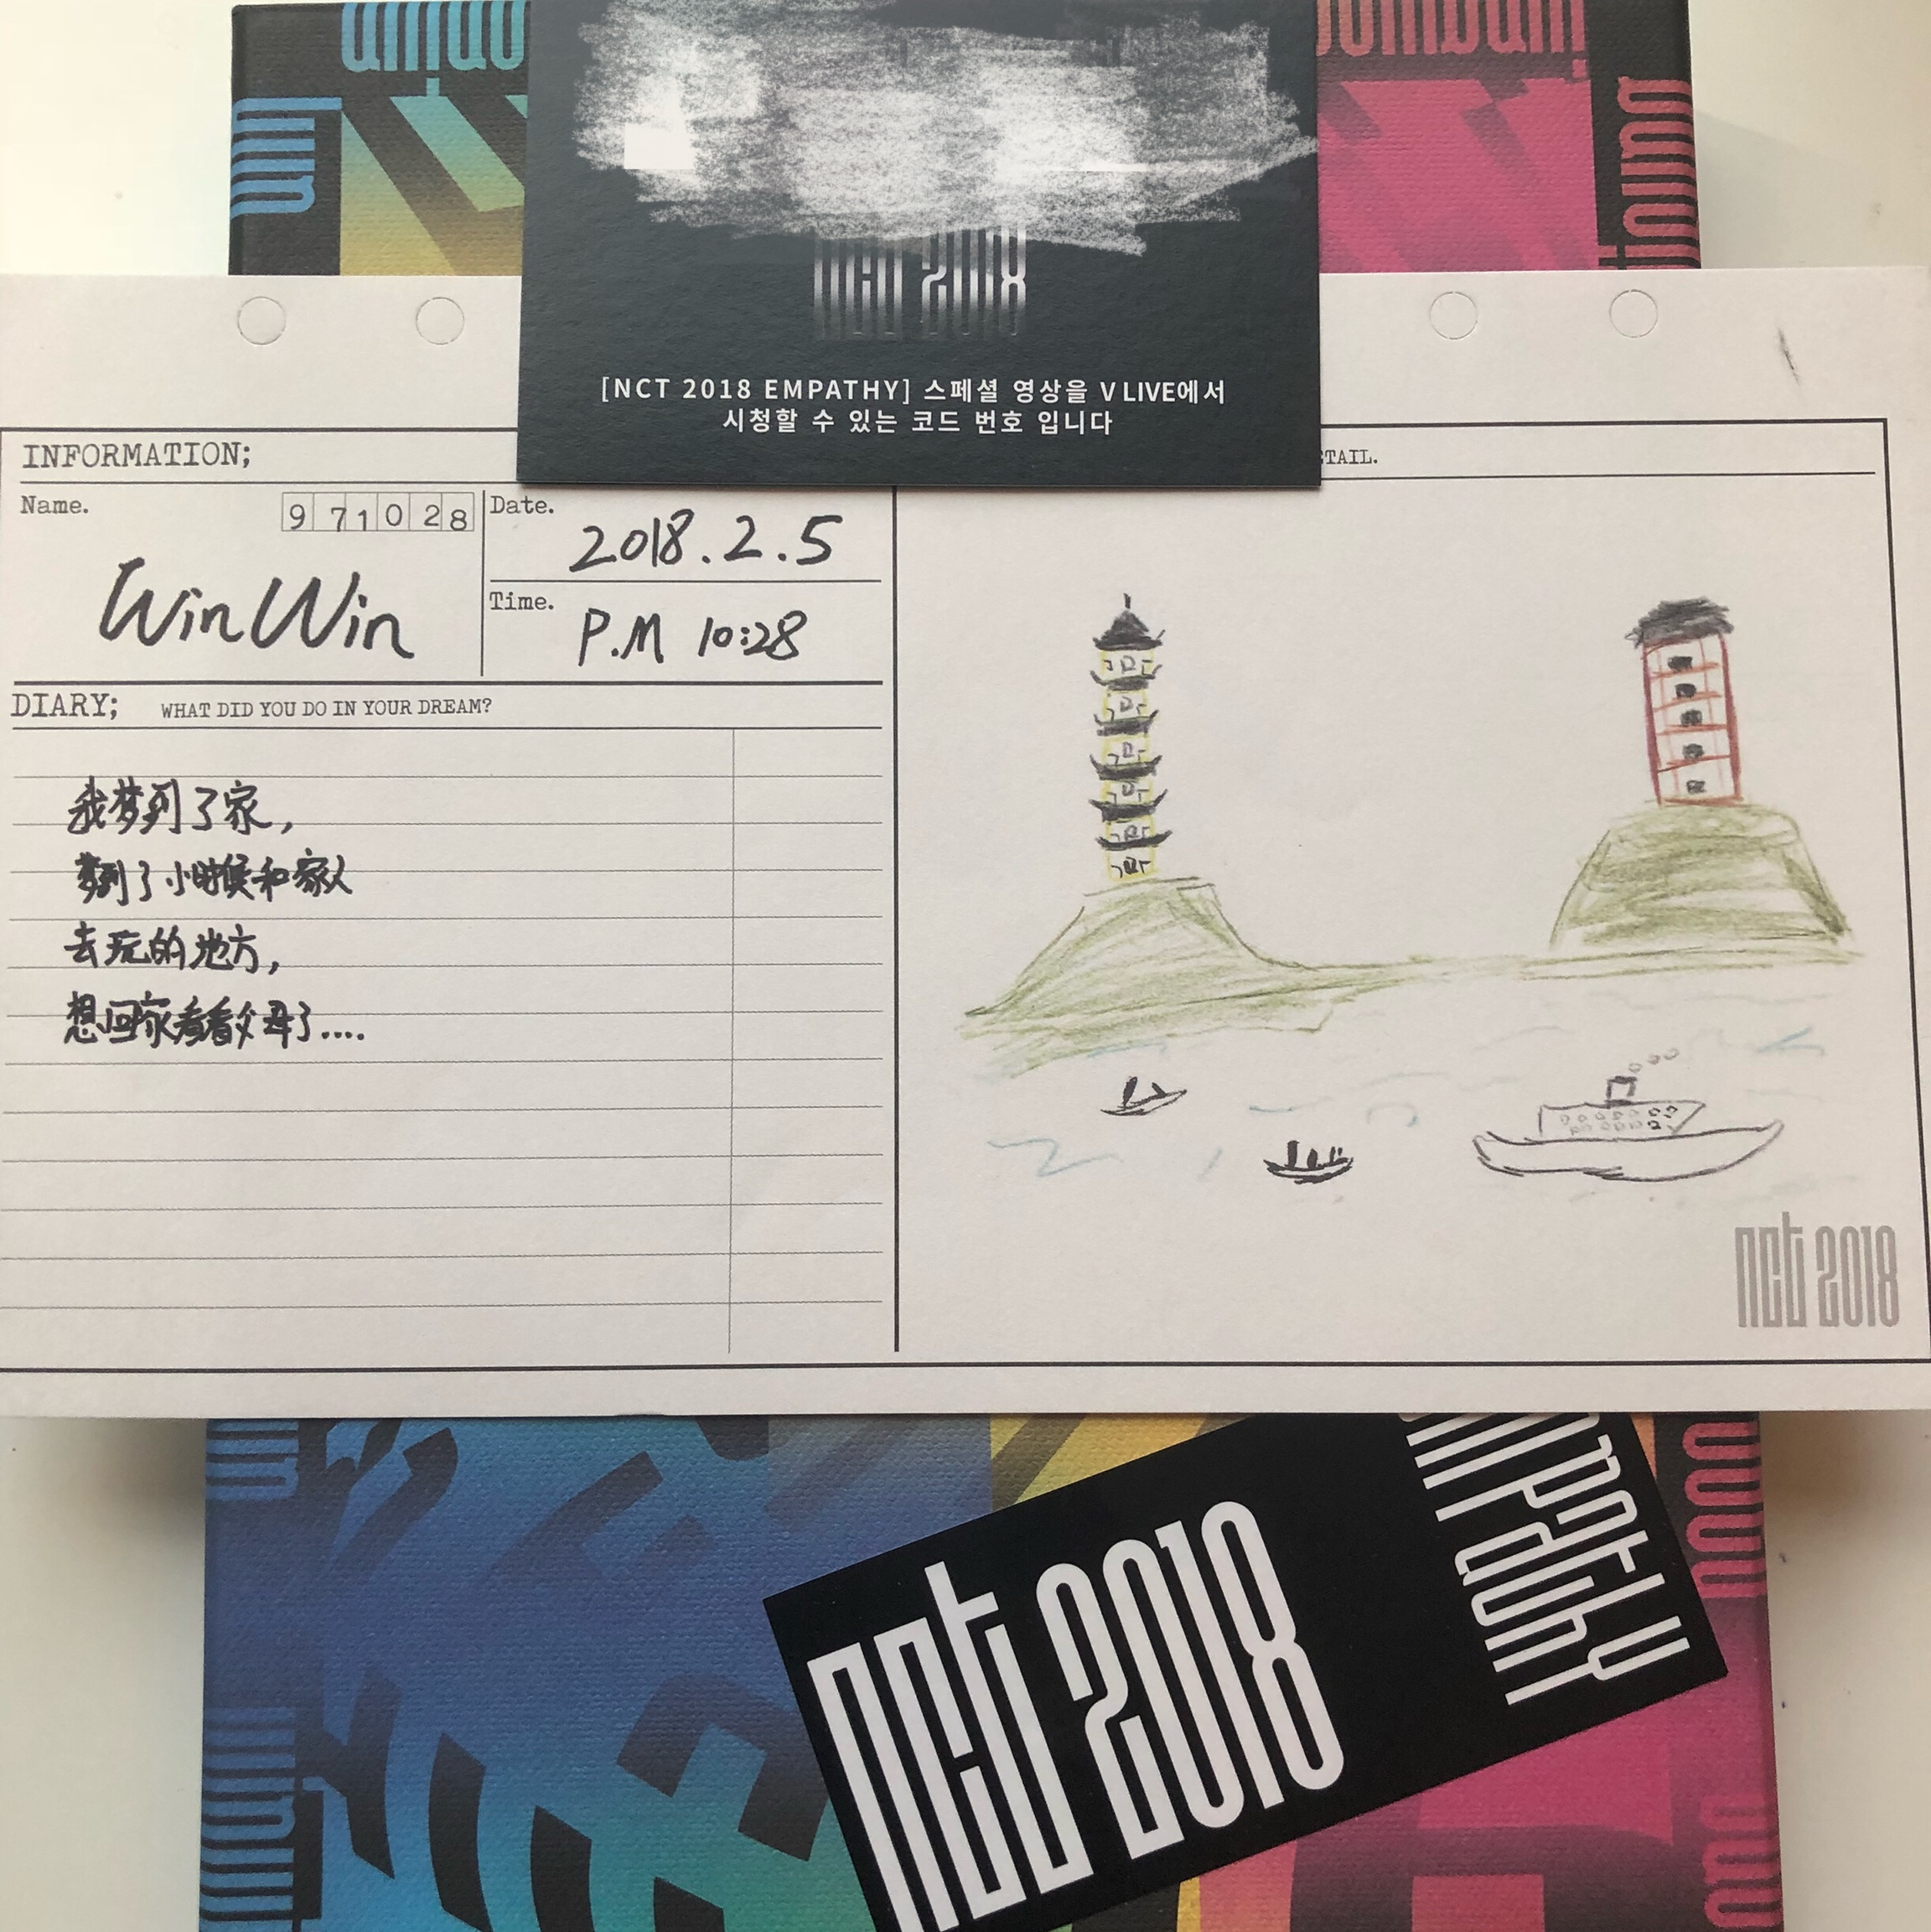 NCT 2018 Empathy dream Ver With Winwin's diary and    - Depop